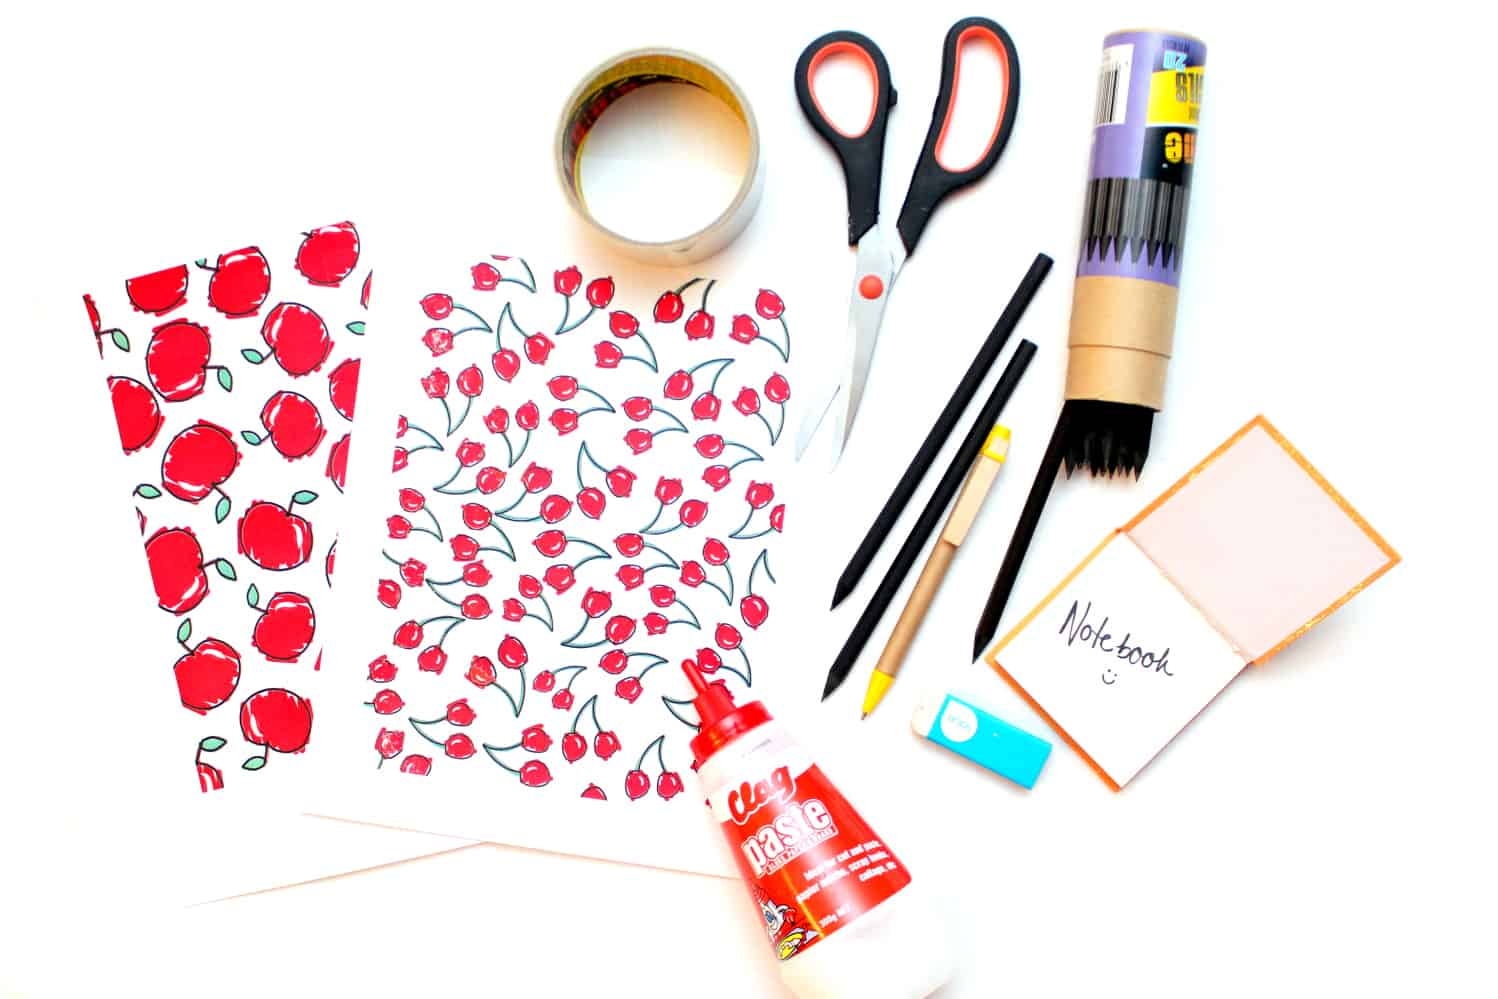 Cute cherry and apple stationery set